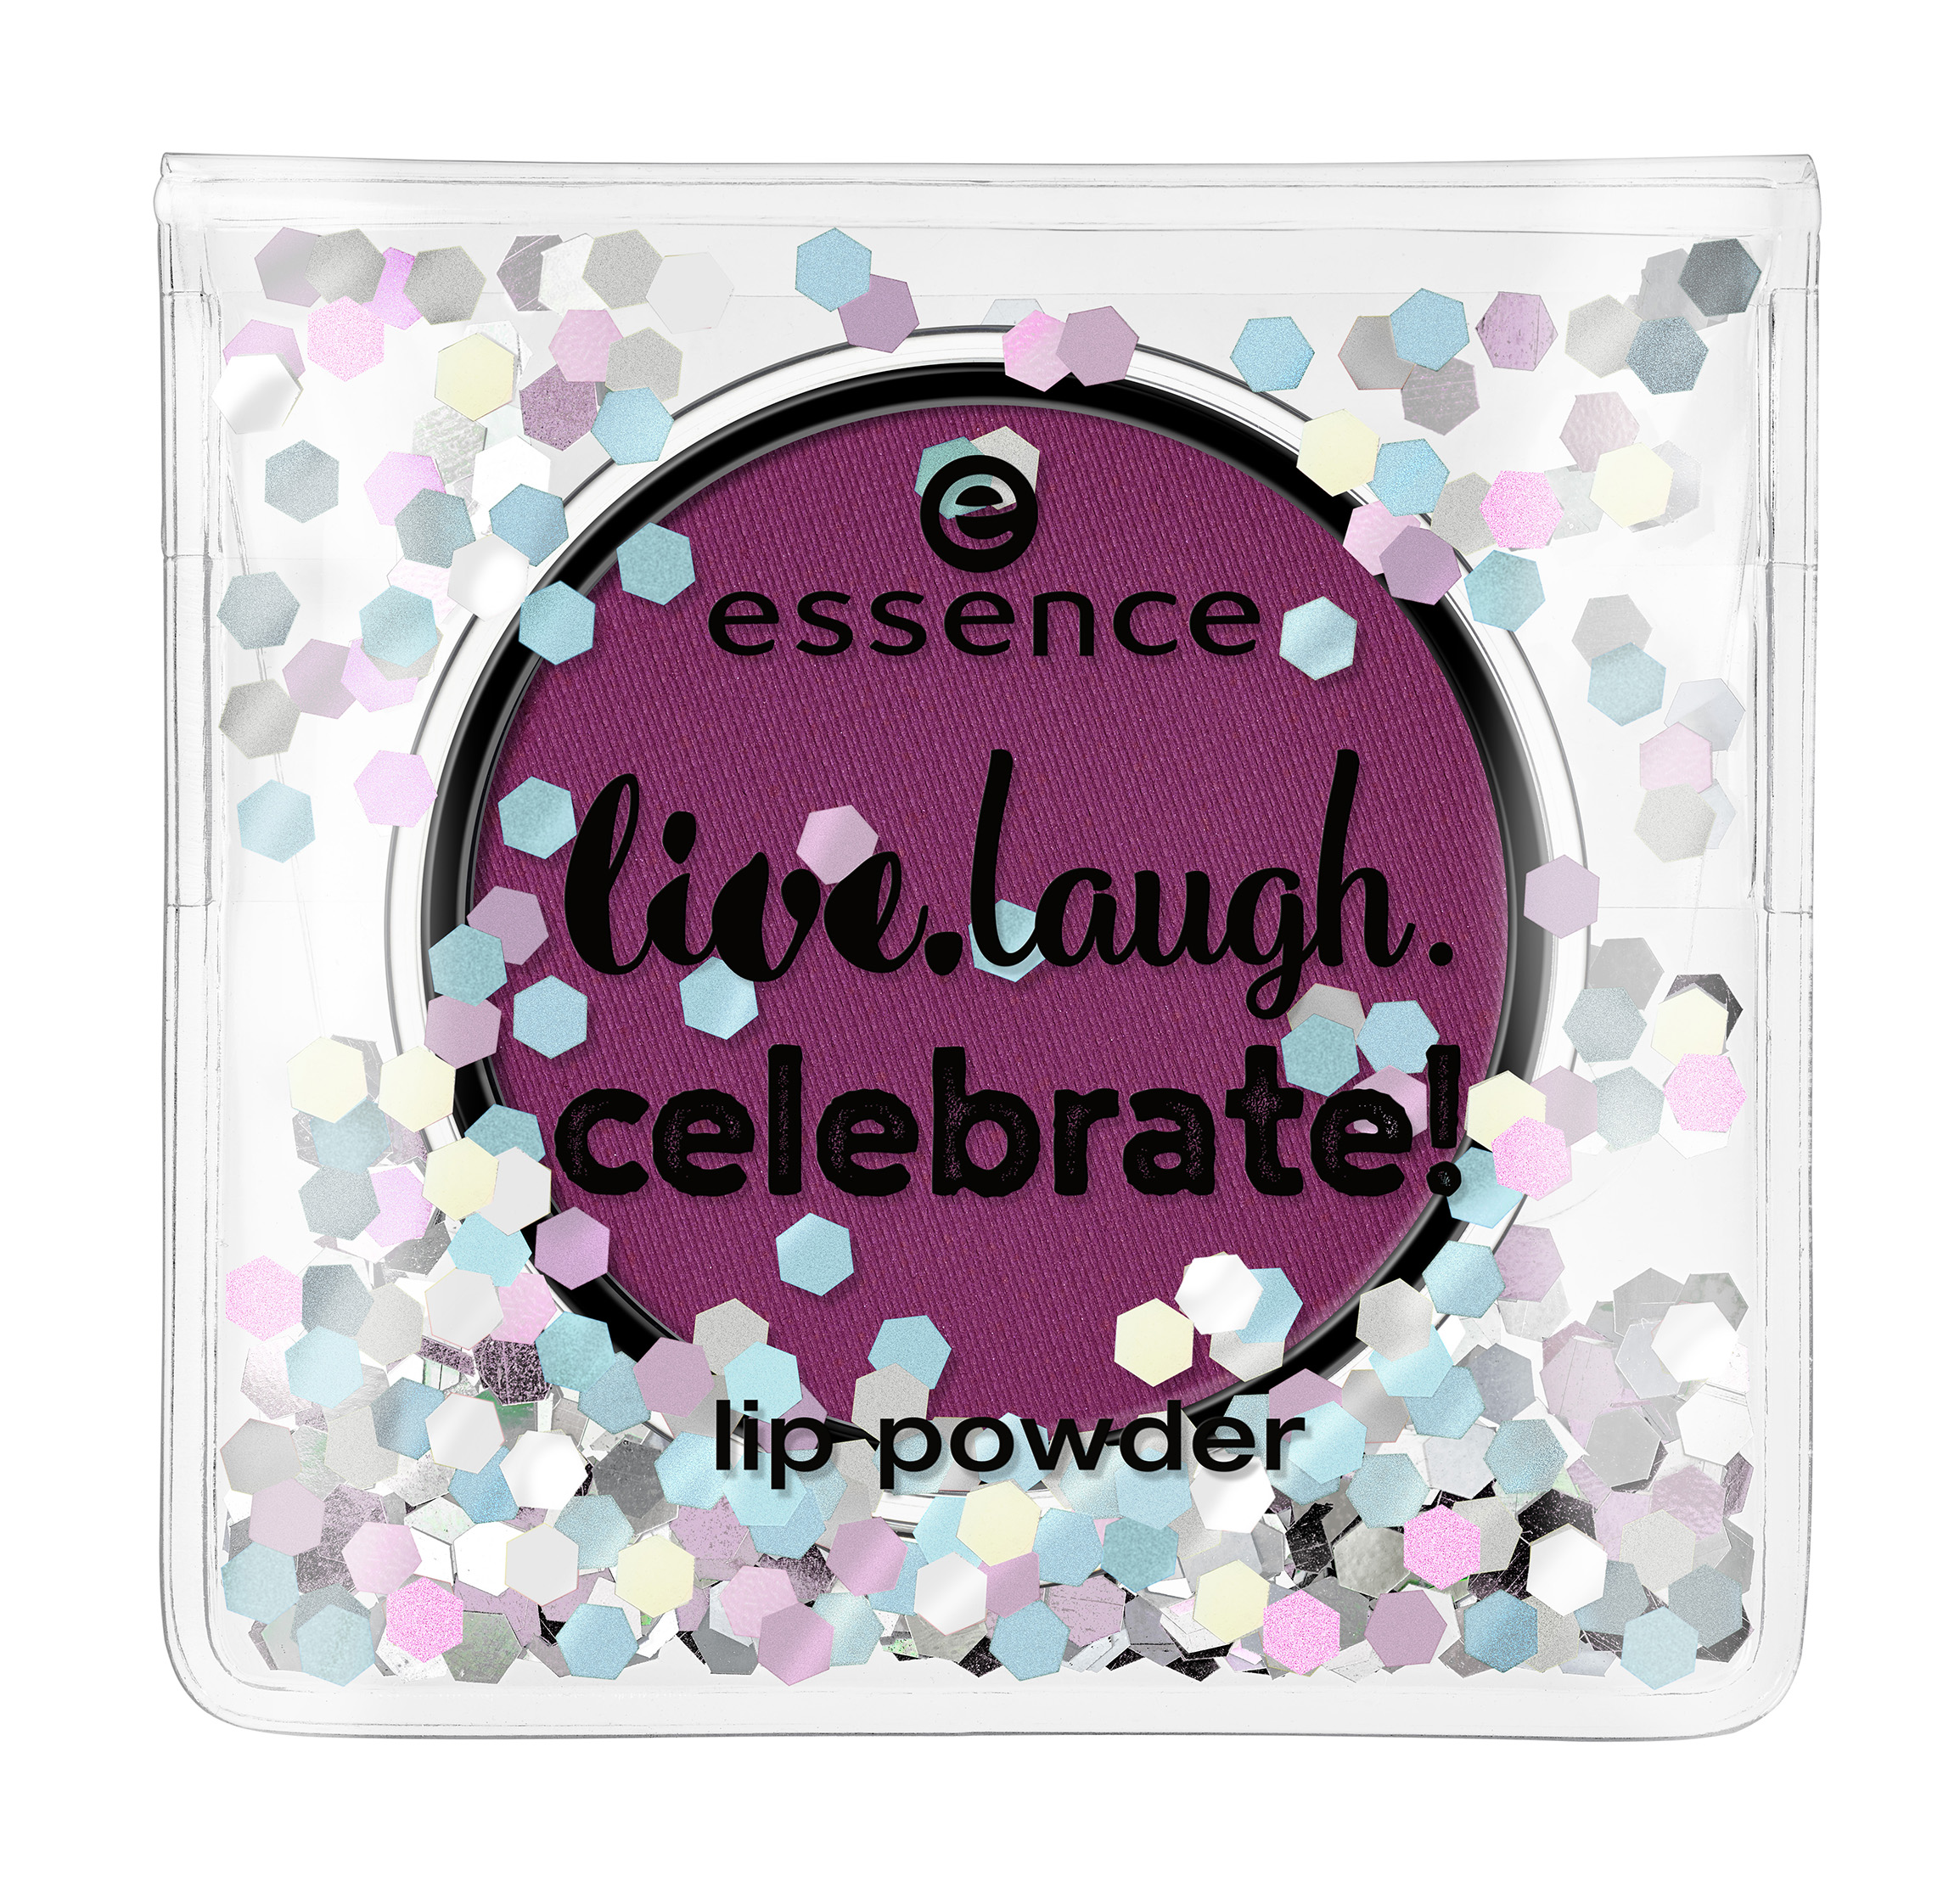 essence live.laugh.celebrate! lip powder 01